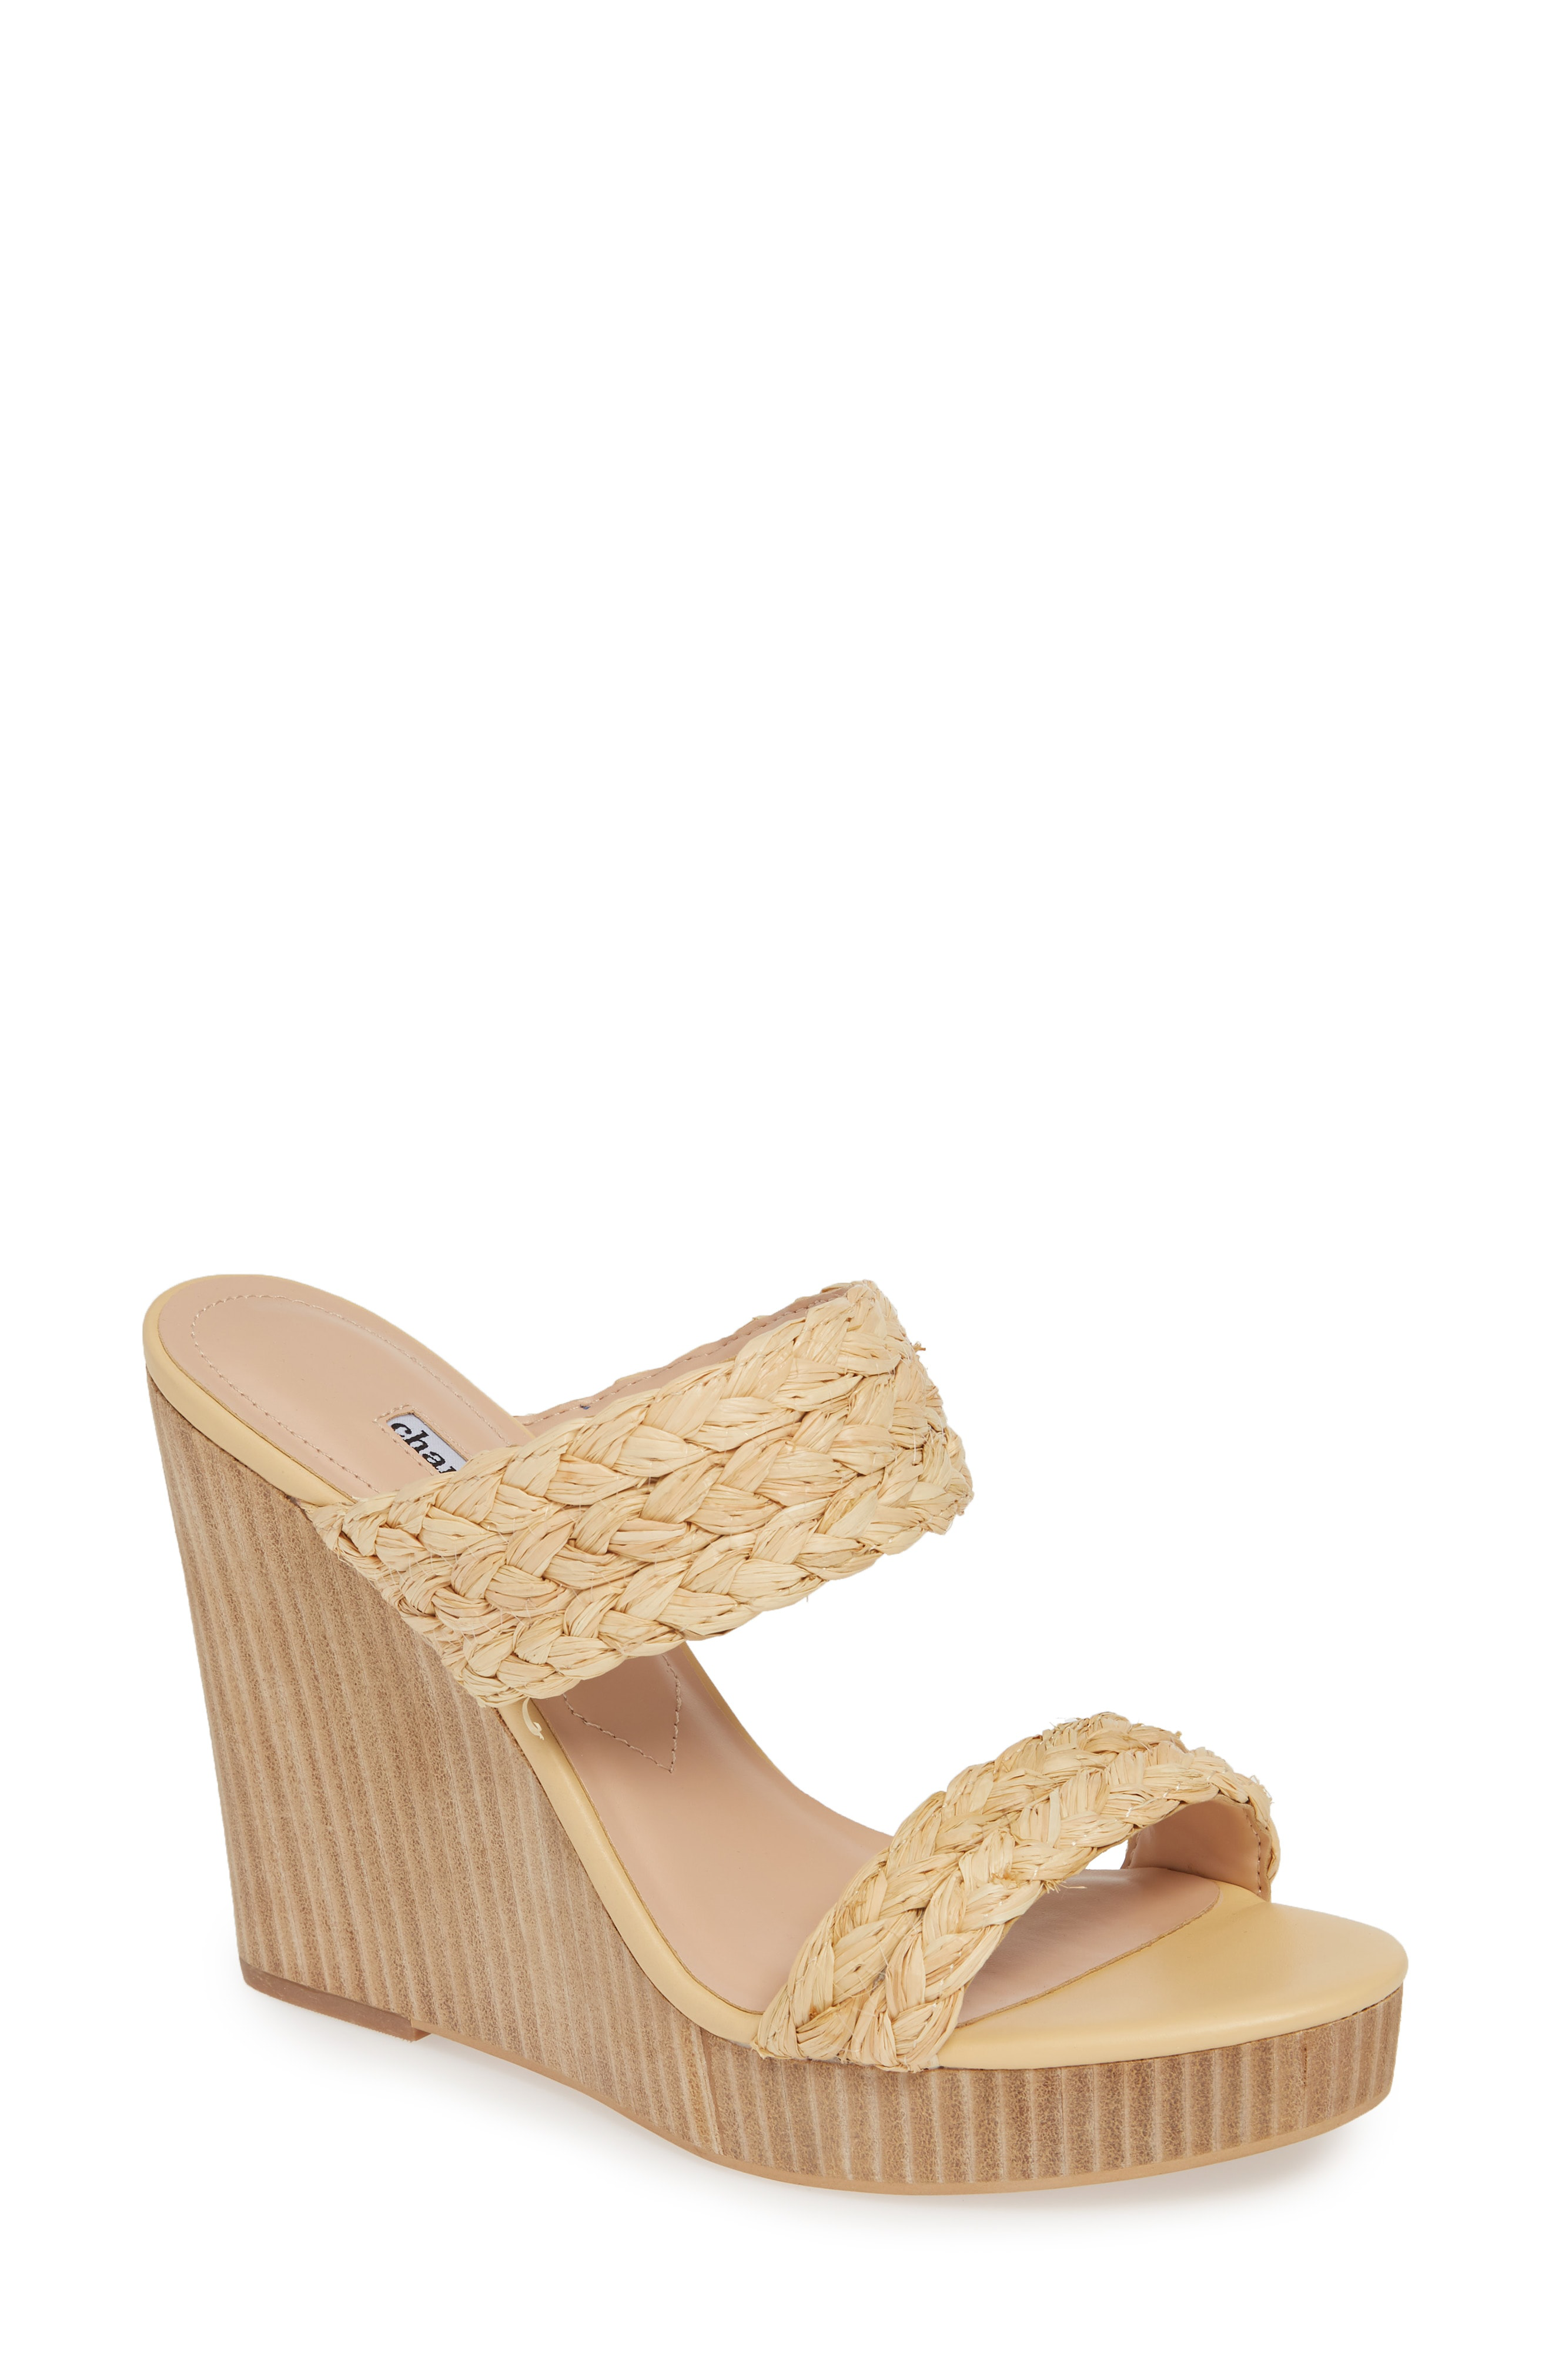 90a6925cca Charles David Women's Tifa Raffia Wedge Sandals In Natural-Rf | ModeSens